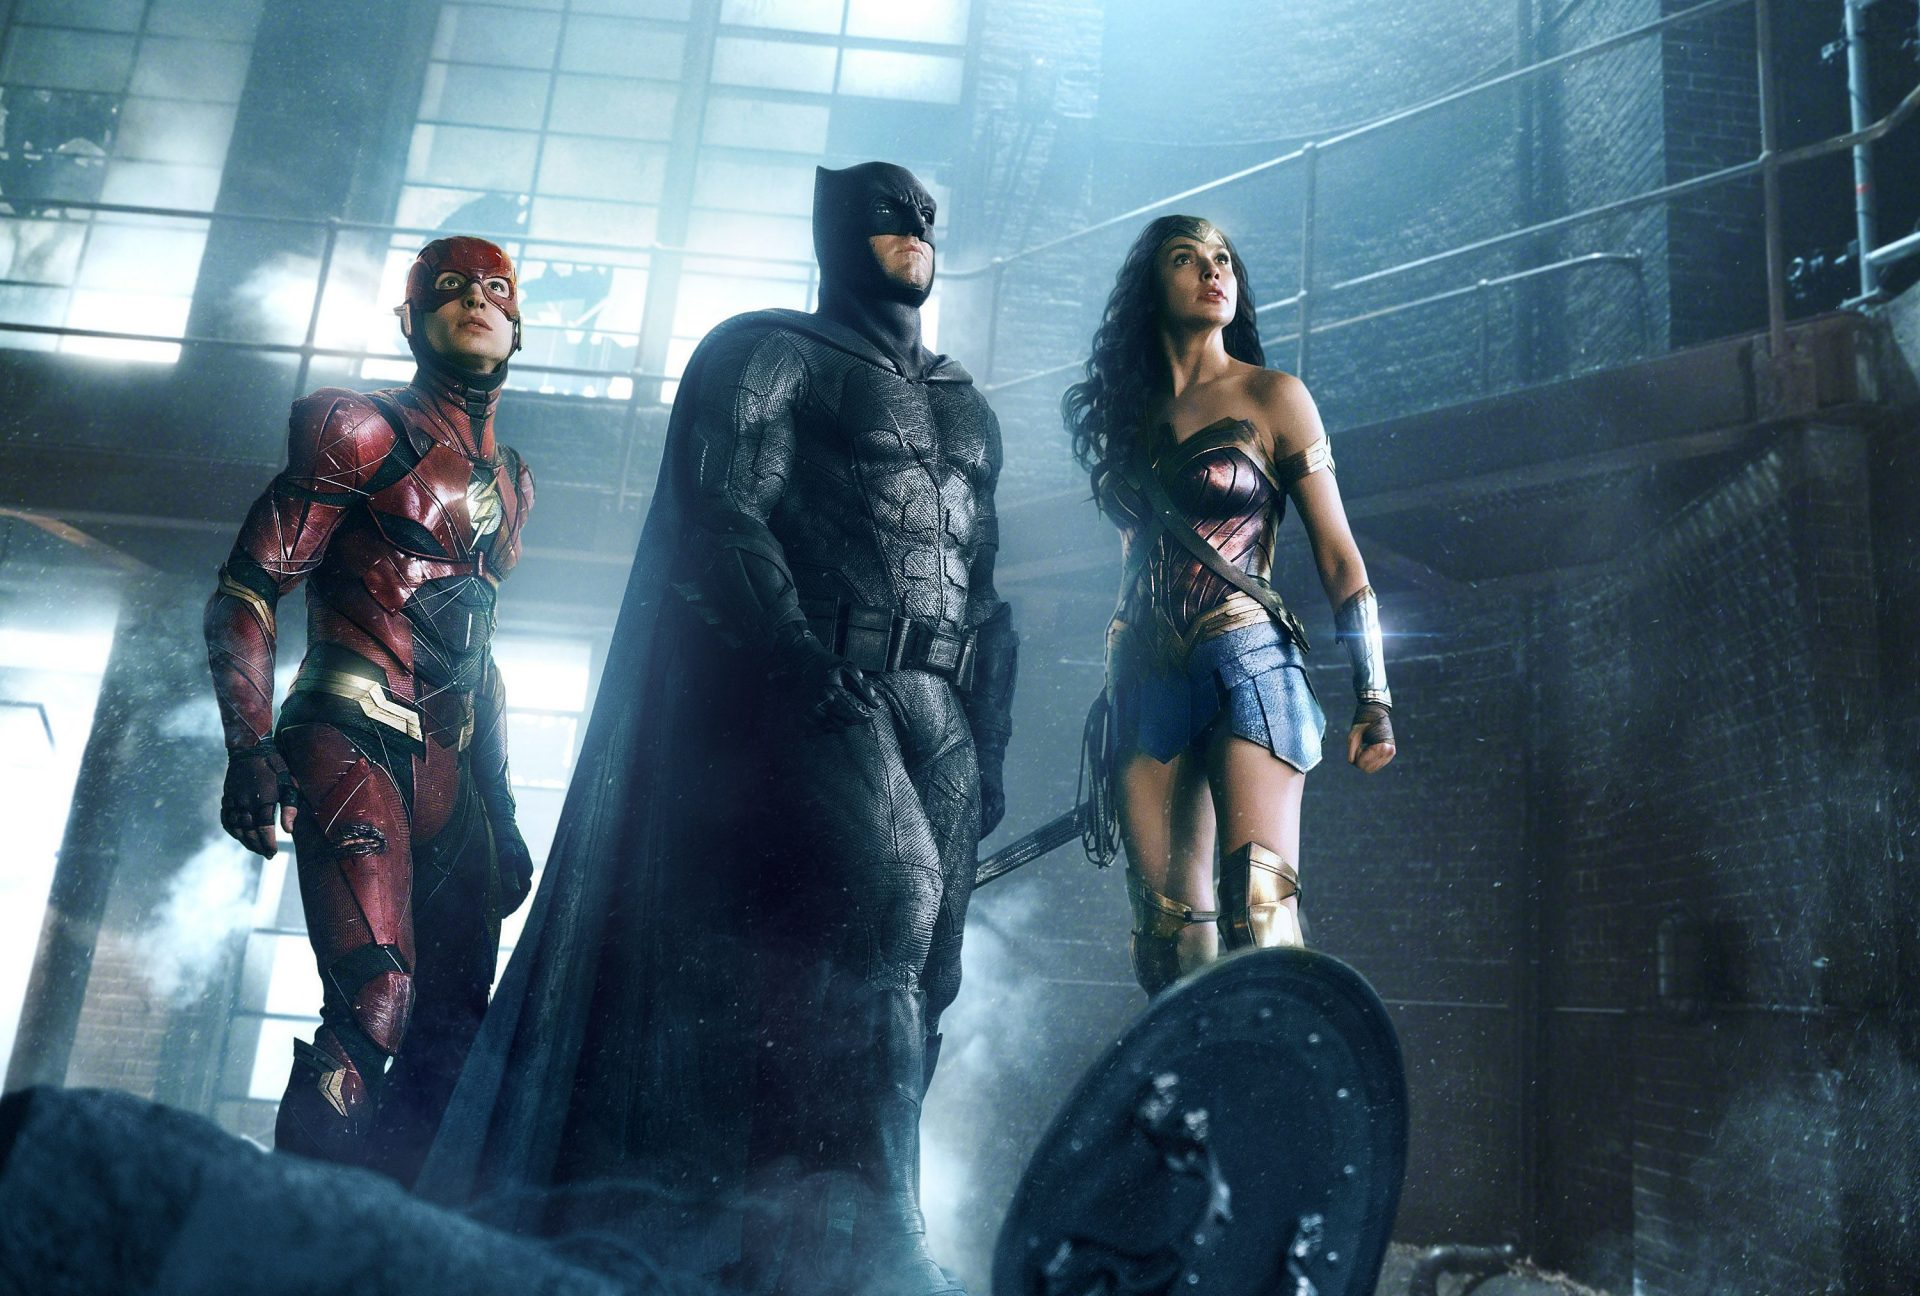 Justice League - The Flash, Batman and Wonder Woman